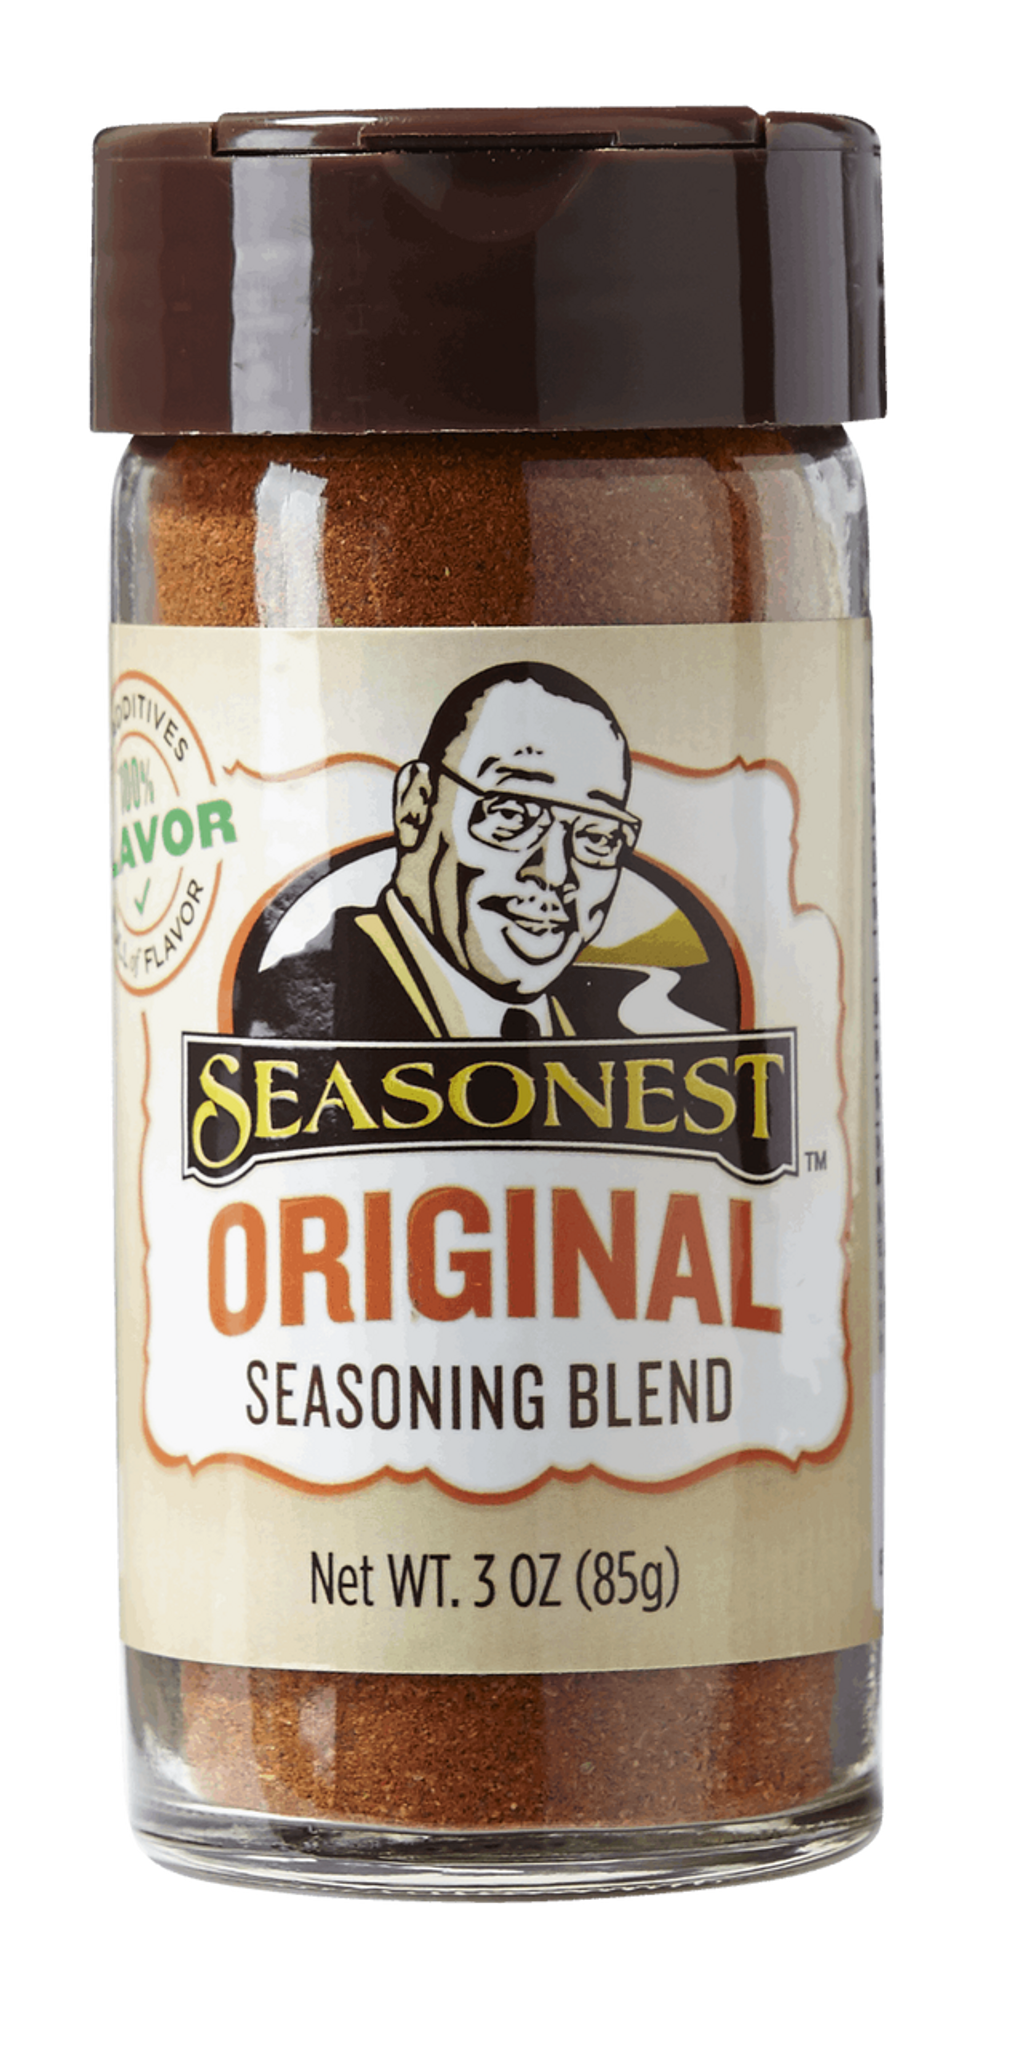 Seasonest Original Seasoning Blend